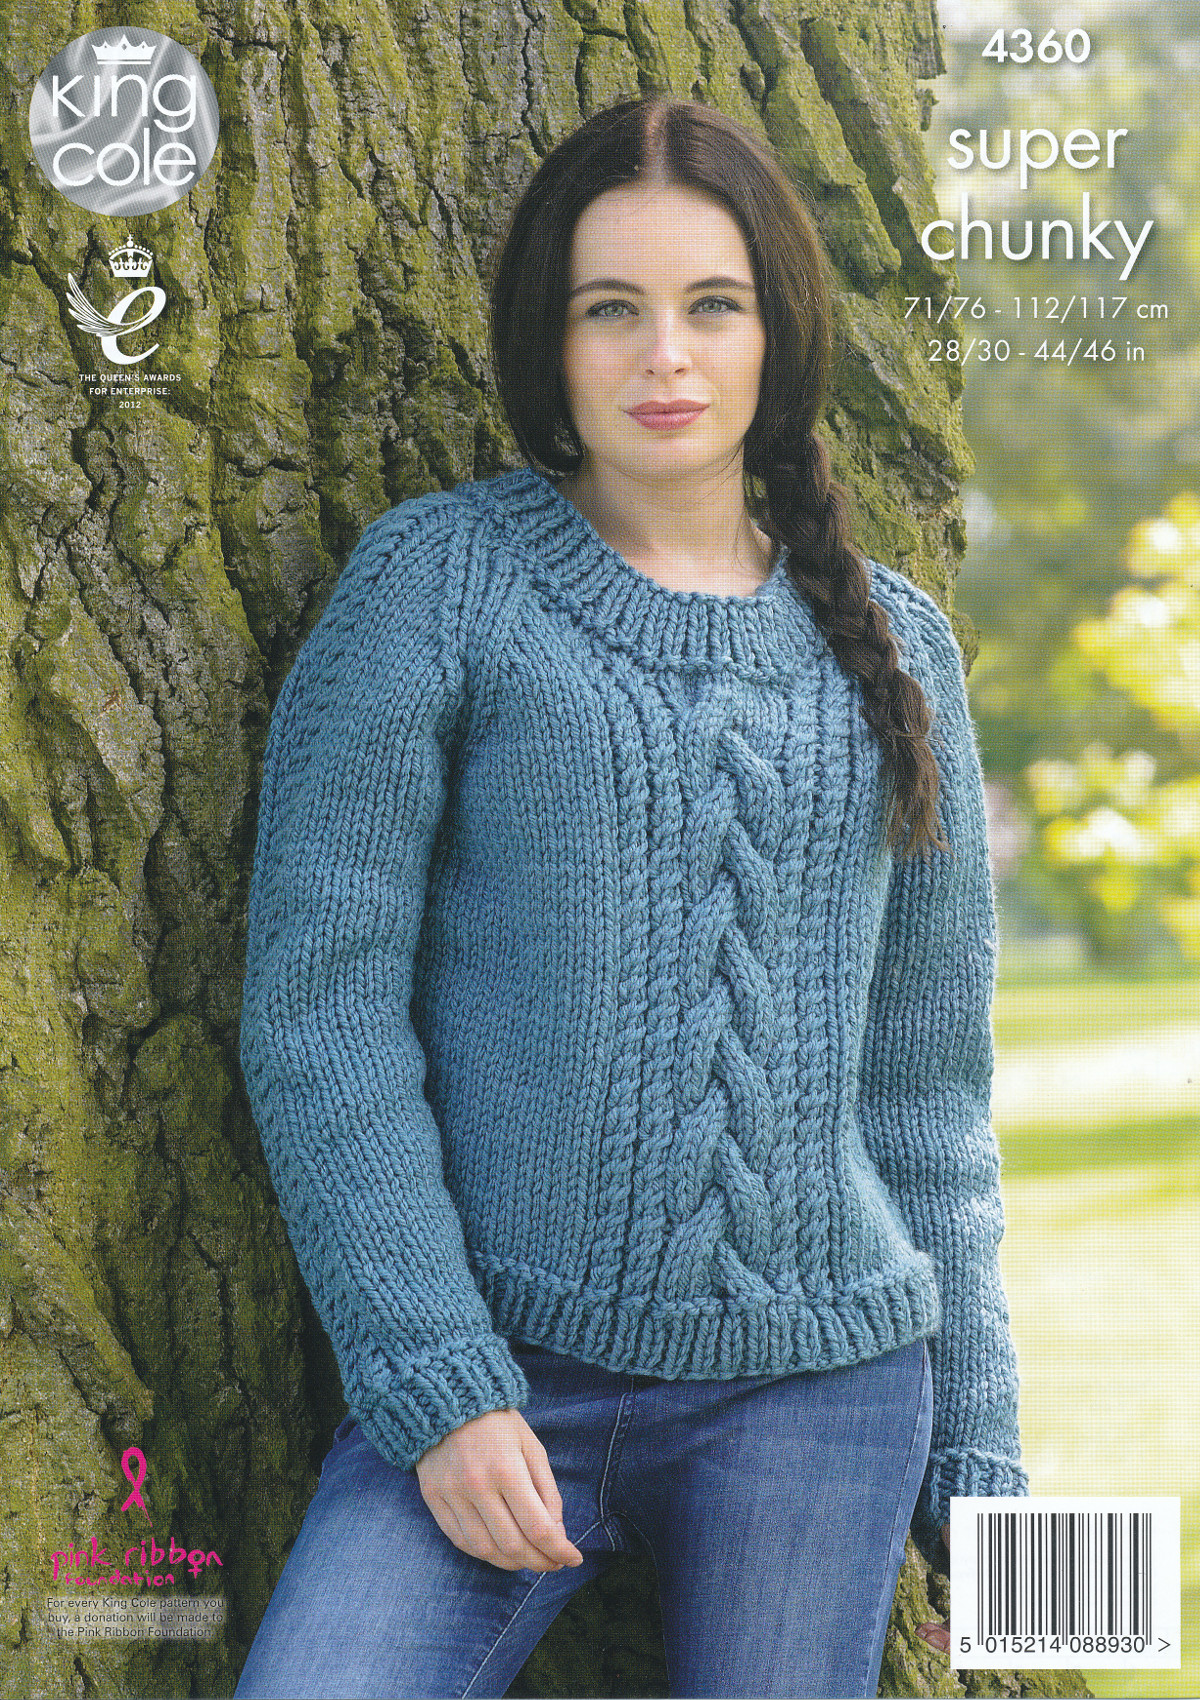 Knitting Patterns For Chunky Wool Sweaters : Knit Sweater Patterns Chunky Yarn - Long Sweater Jacket